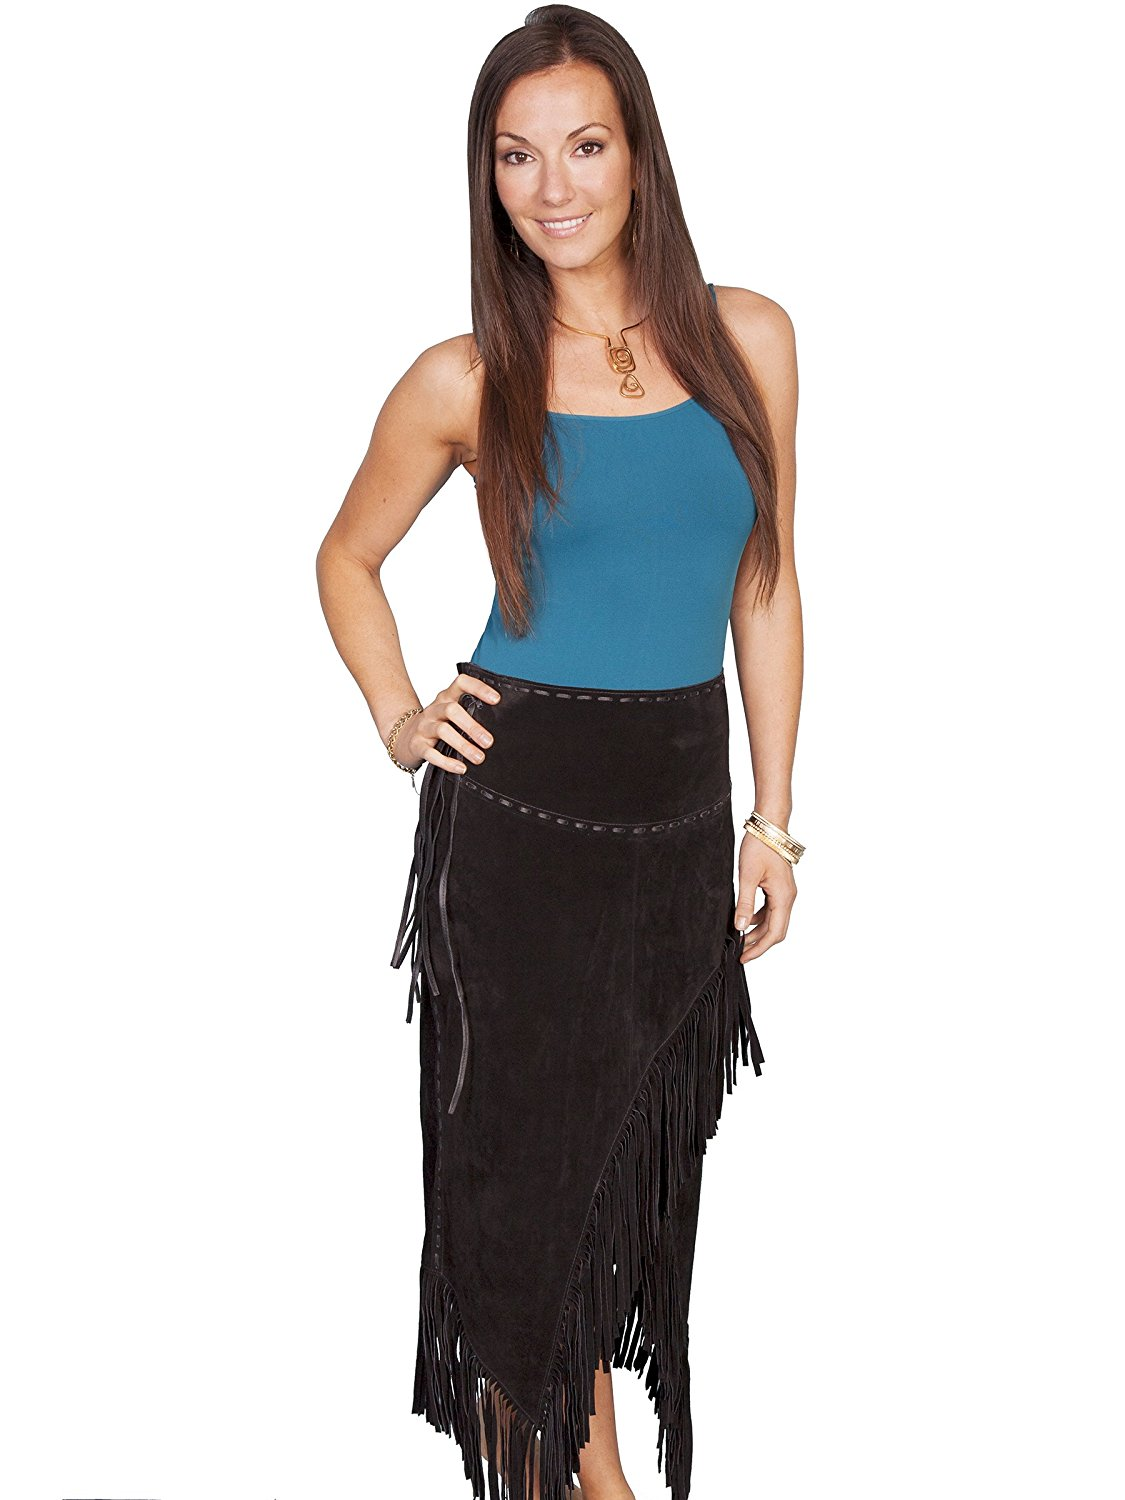 39e5026d05 Get Quotations · Scully Women's Asymmetrical Fringe Suede Leather Skirt -  L659-19